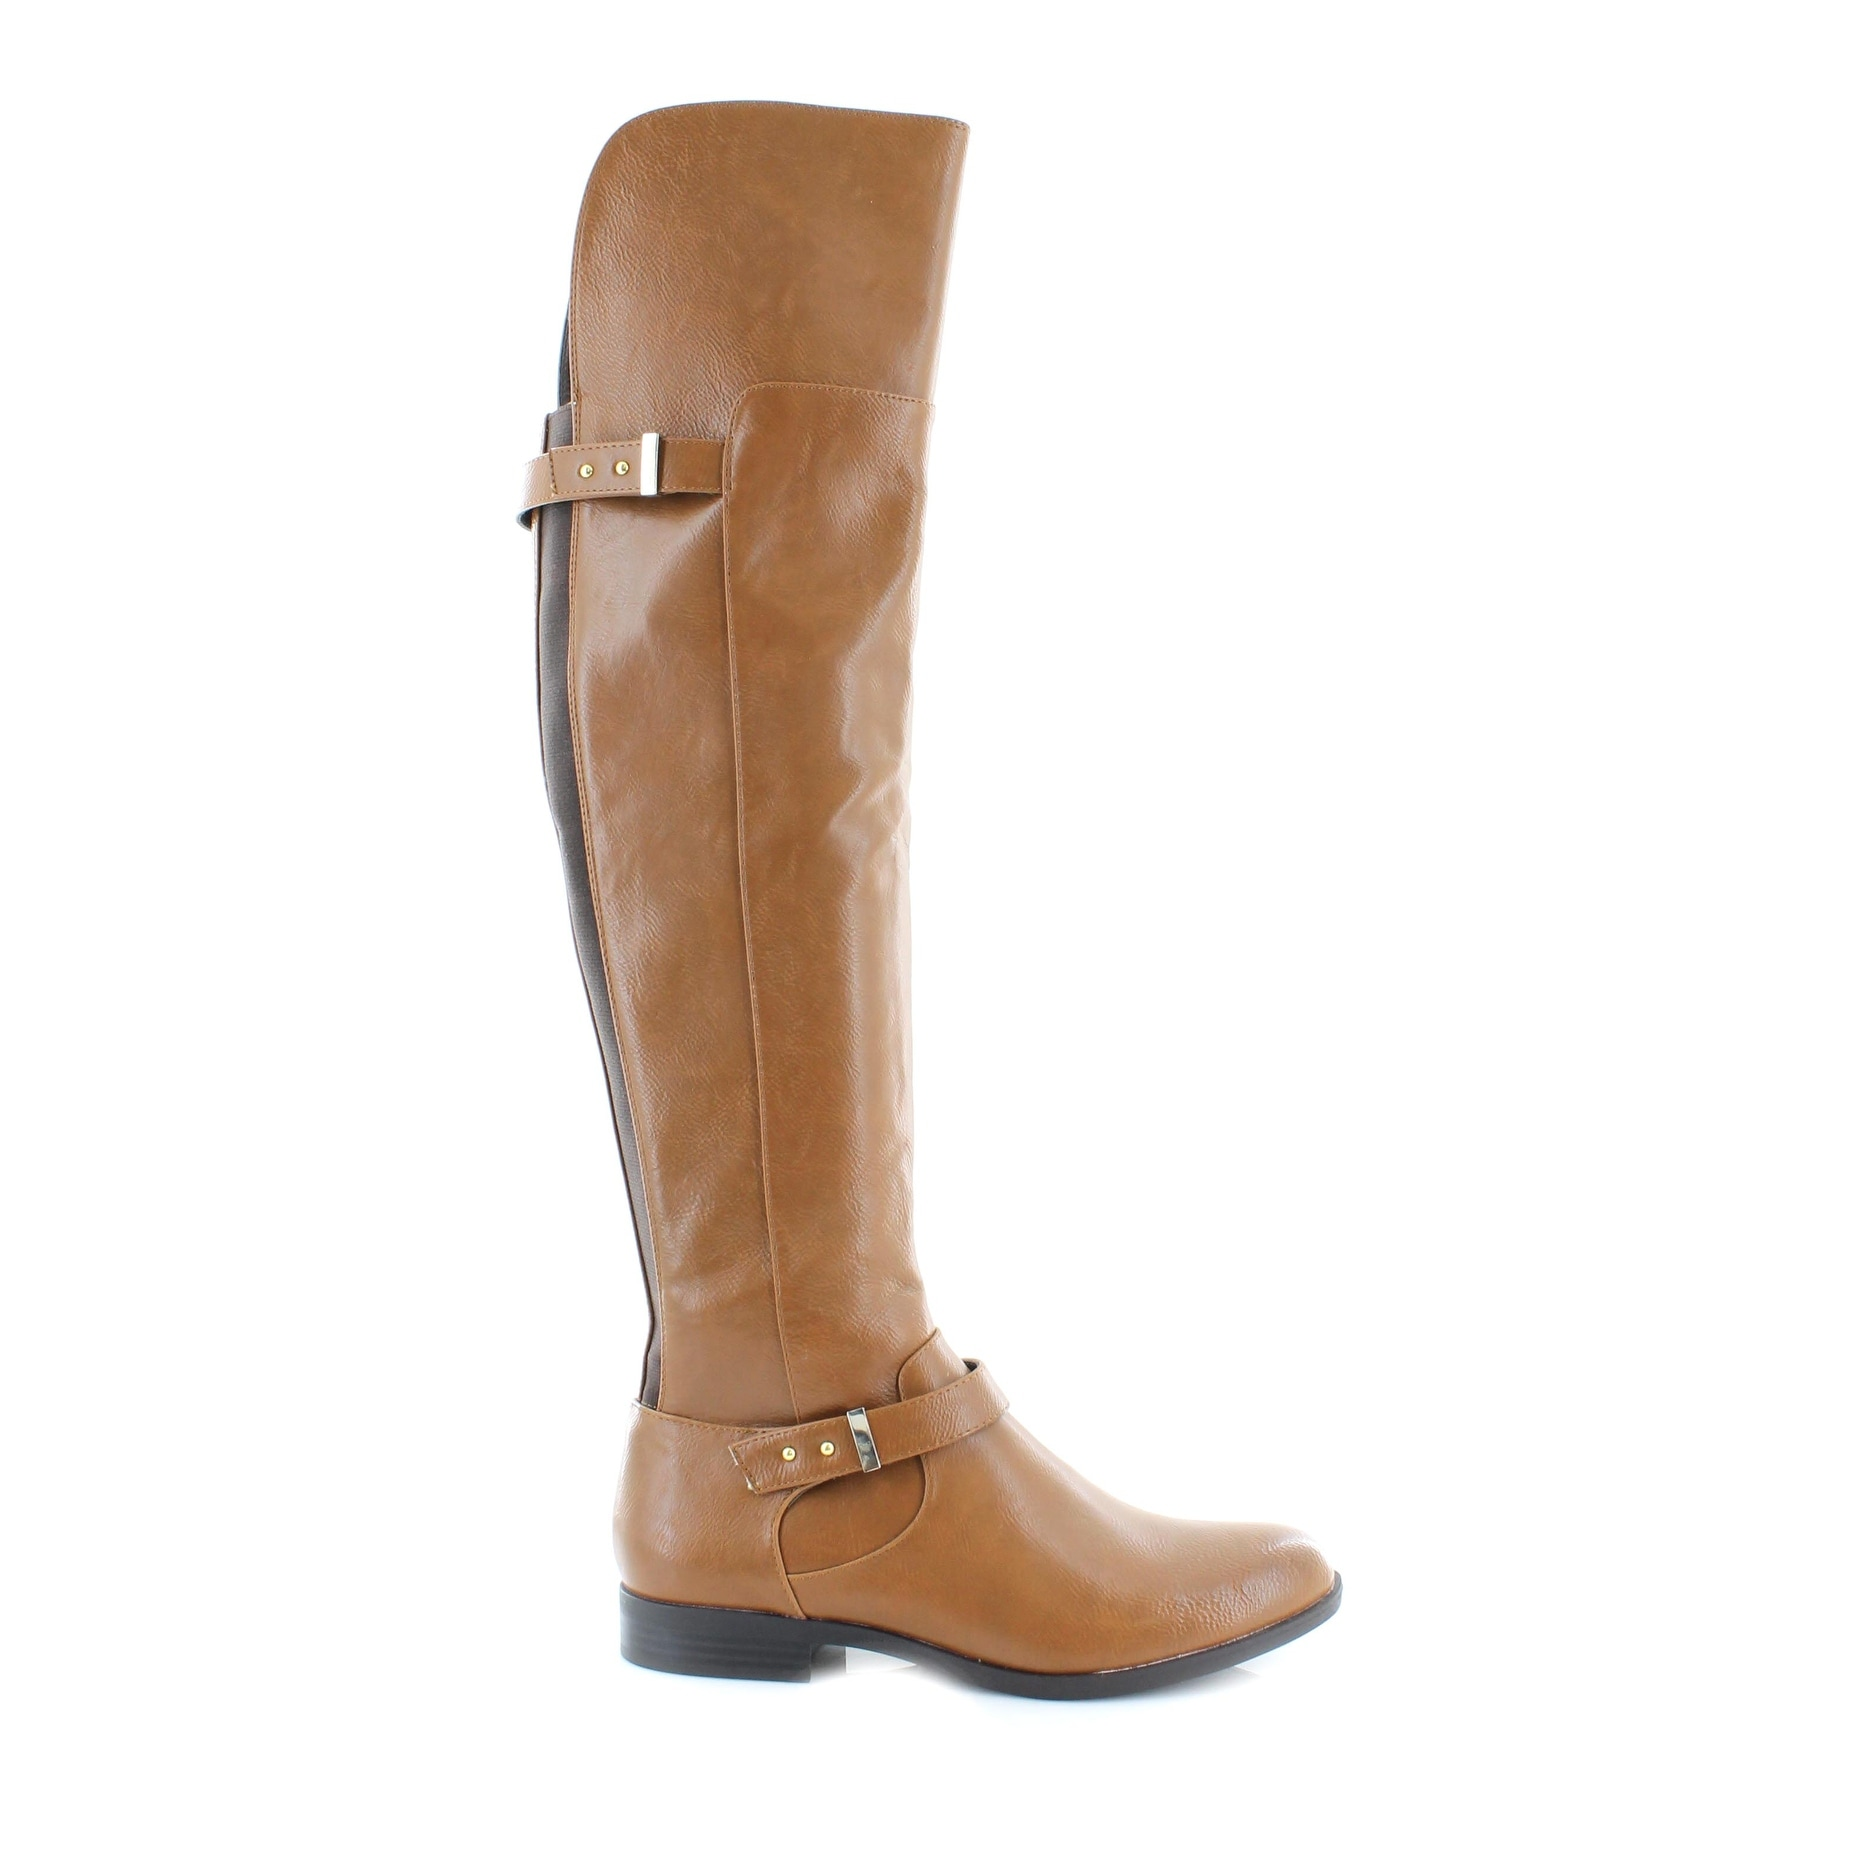 ac87f70fe71 Shop Bar III Daphne Women s Boots Banana Bread - Free Shipping On Orders  Over  45 - Overstock - 21286975